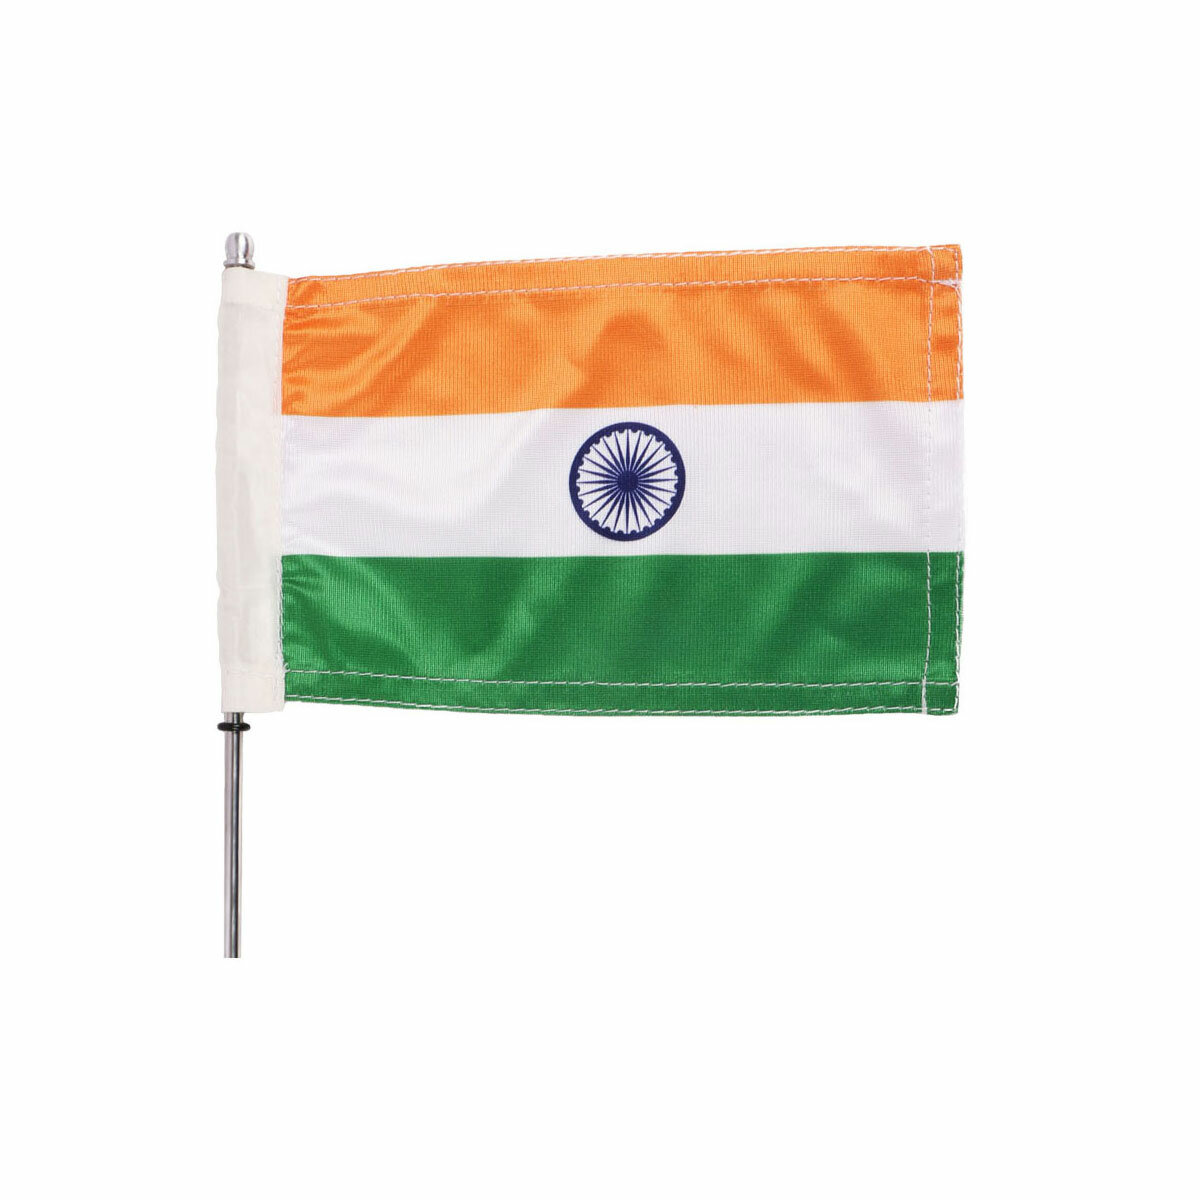 durable indian flag for the bike, motorcycle, cycle, bicycle or boat